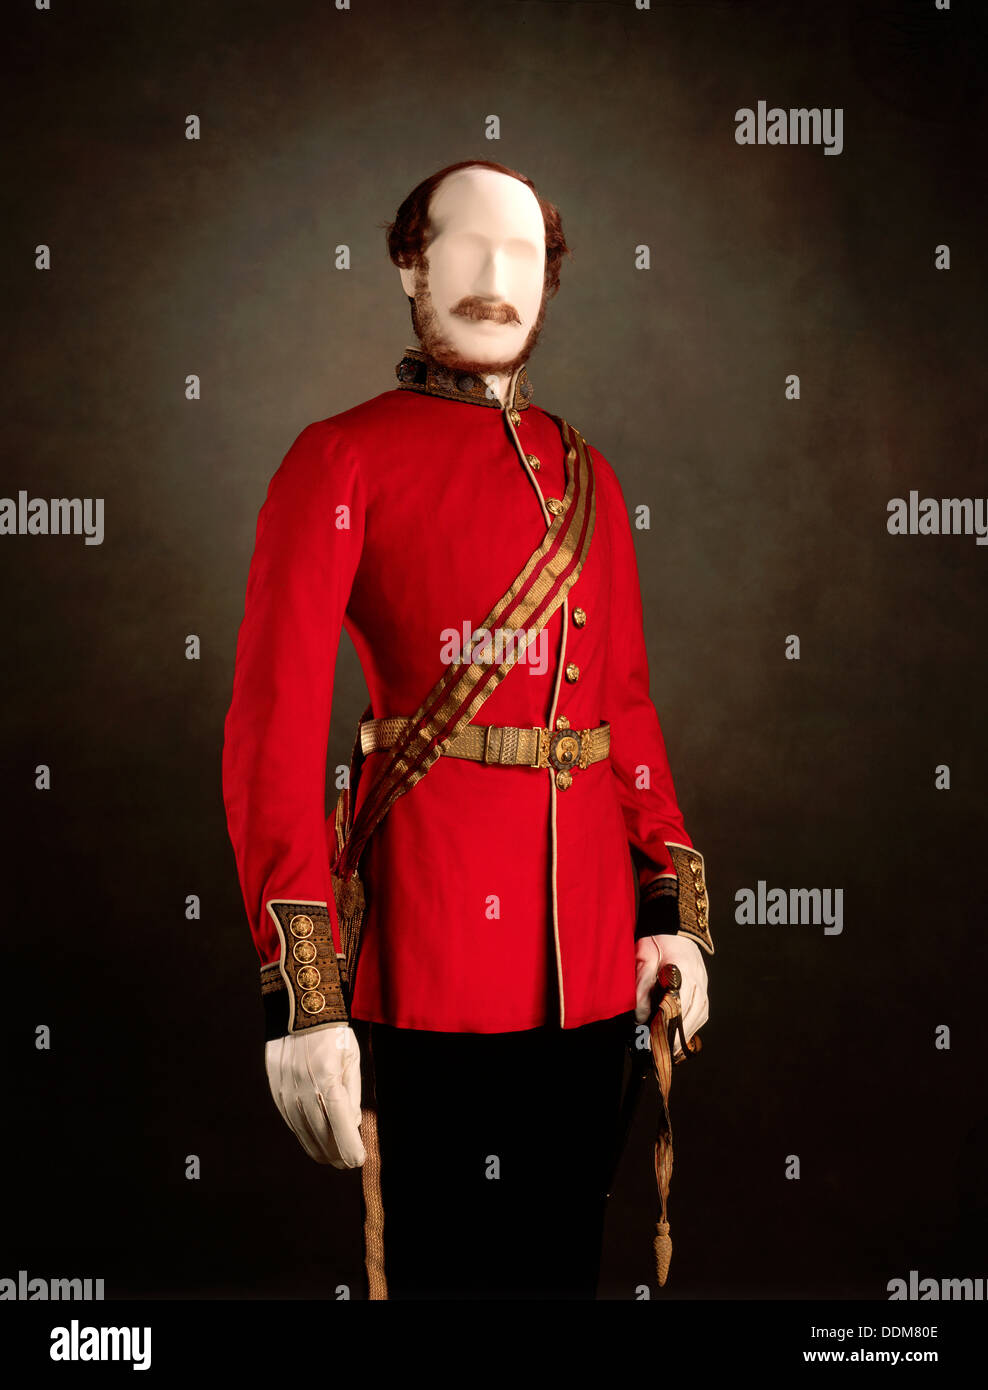 Uniform worn by Prince Albert as Colonel of the Grenadier Guards, 1857. - Stock Image